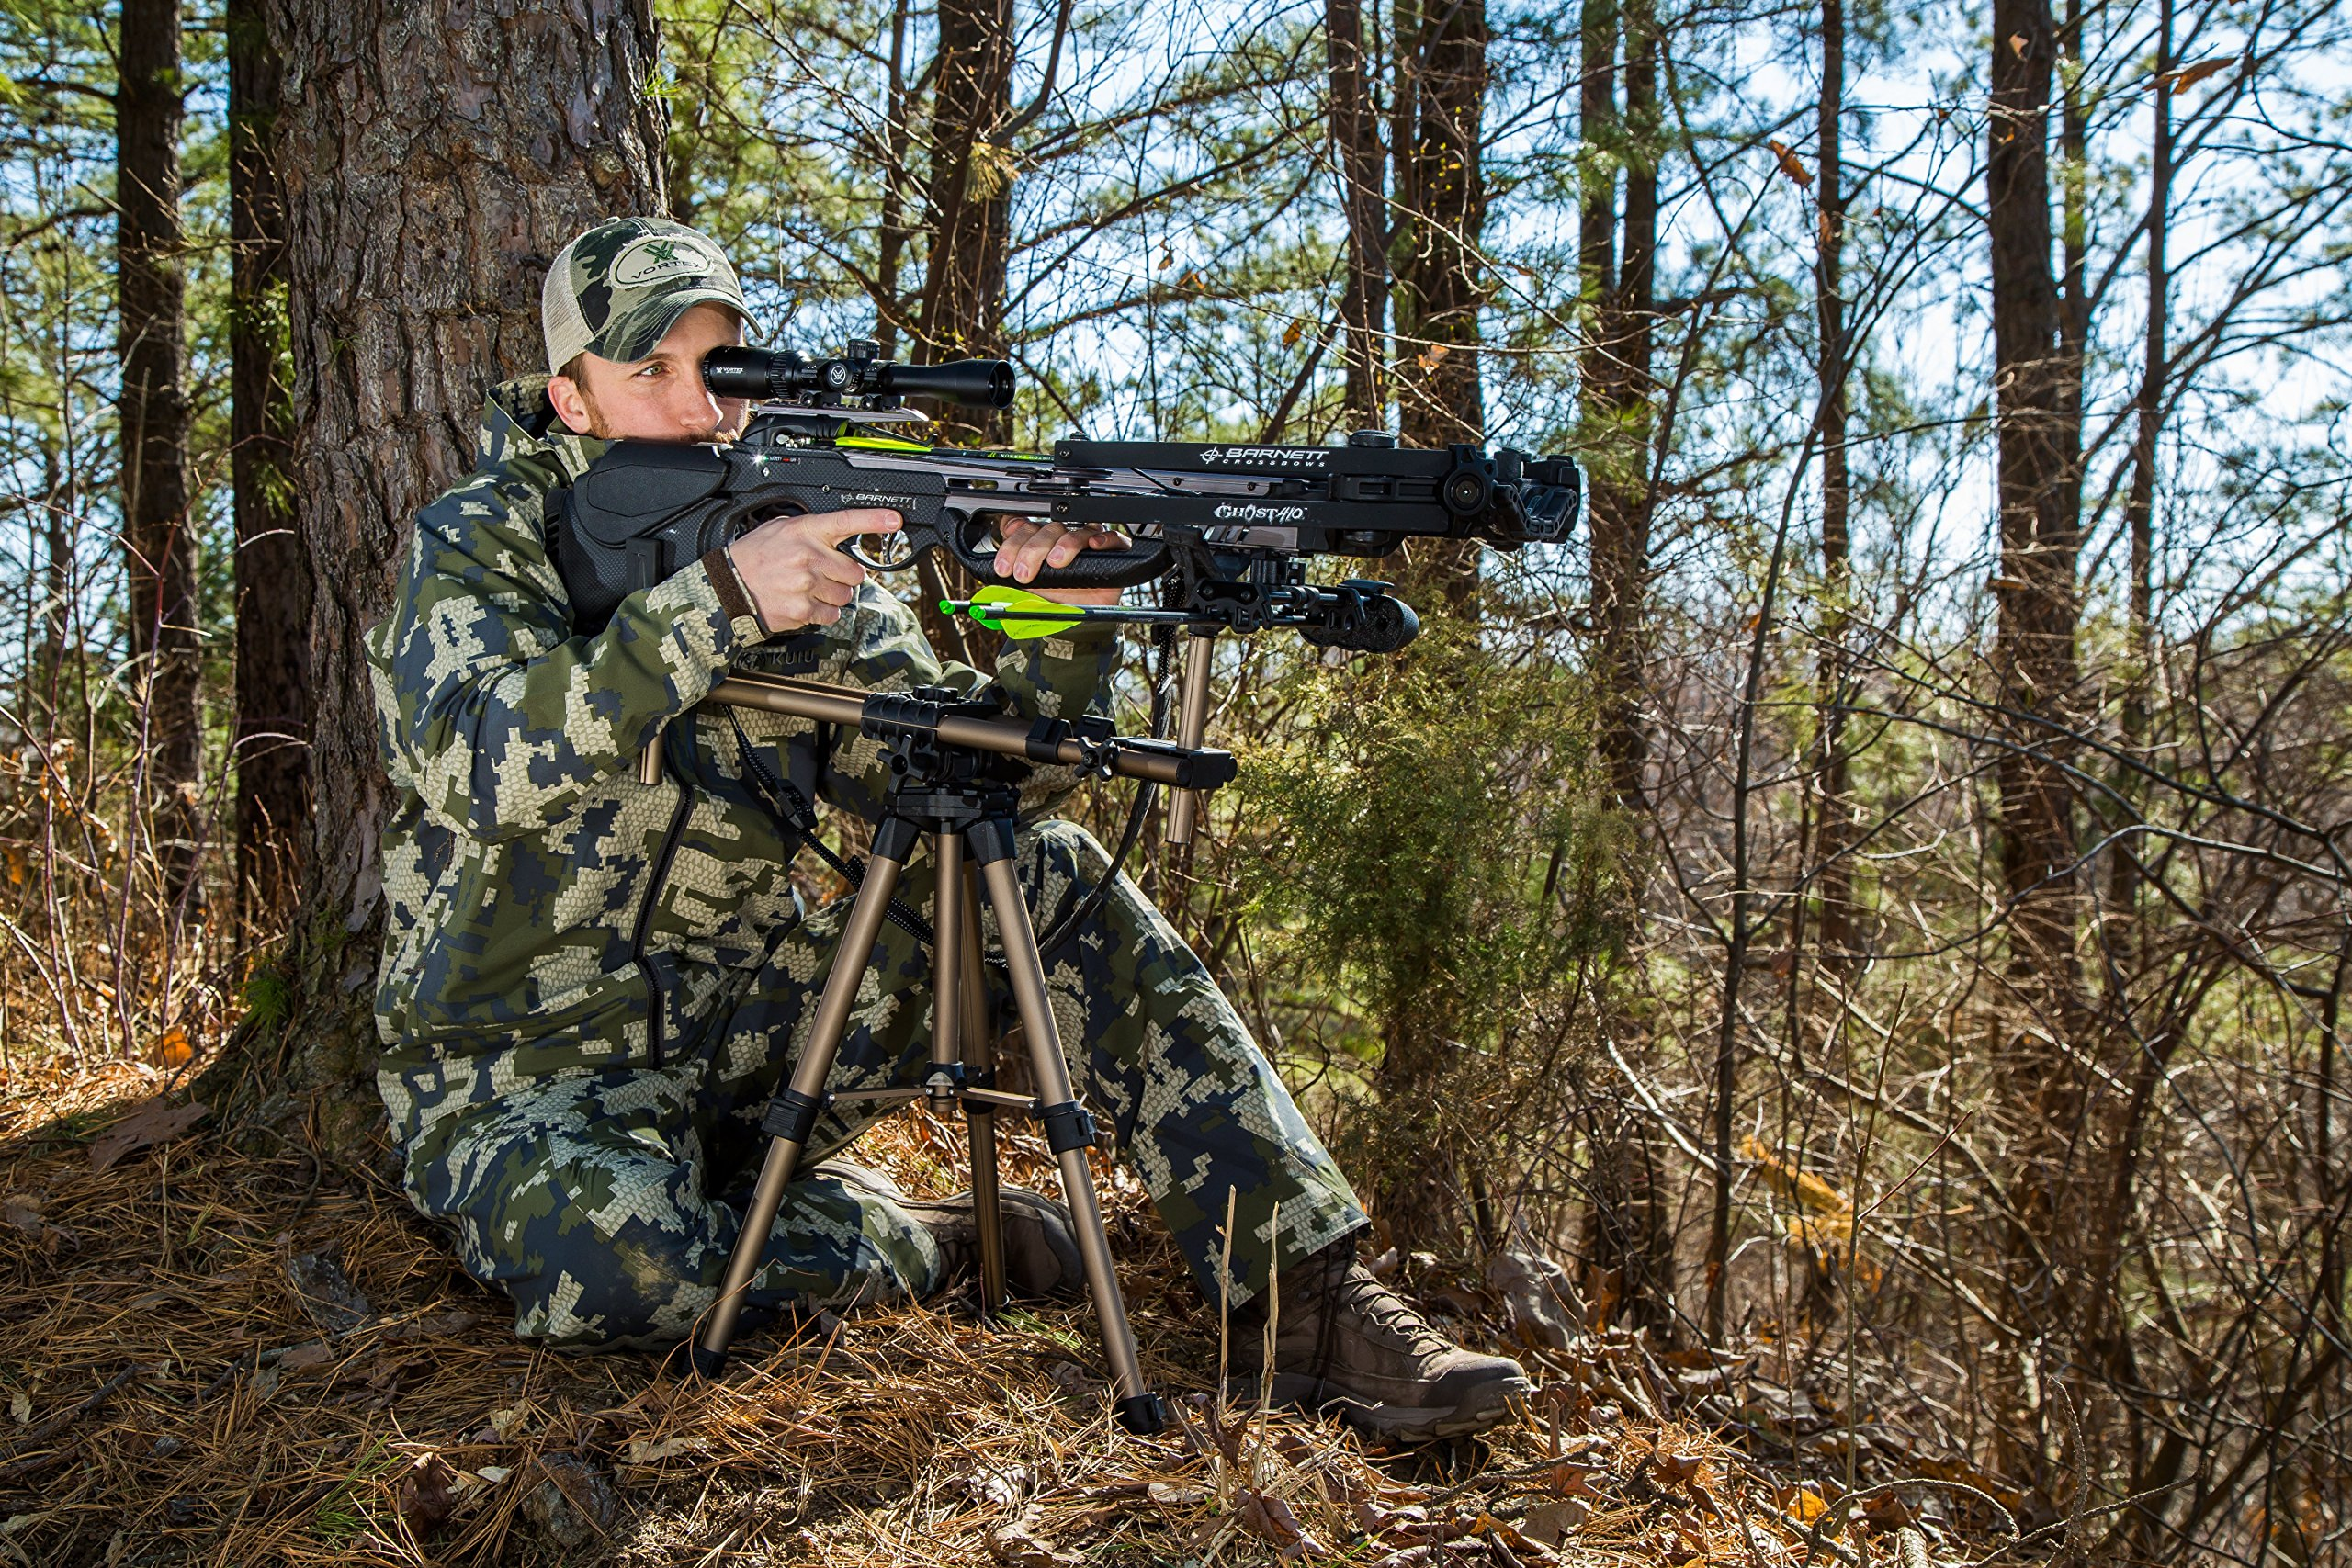 Caldwell DeadShot FieldPod Adjustable Ambidextrous Rifle Shooting Rest for Outdoor Range and Hunting by Caldwell (Image #3)